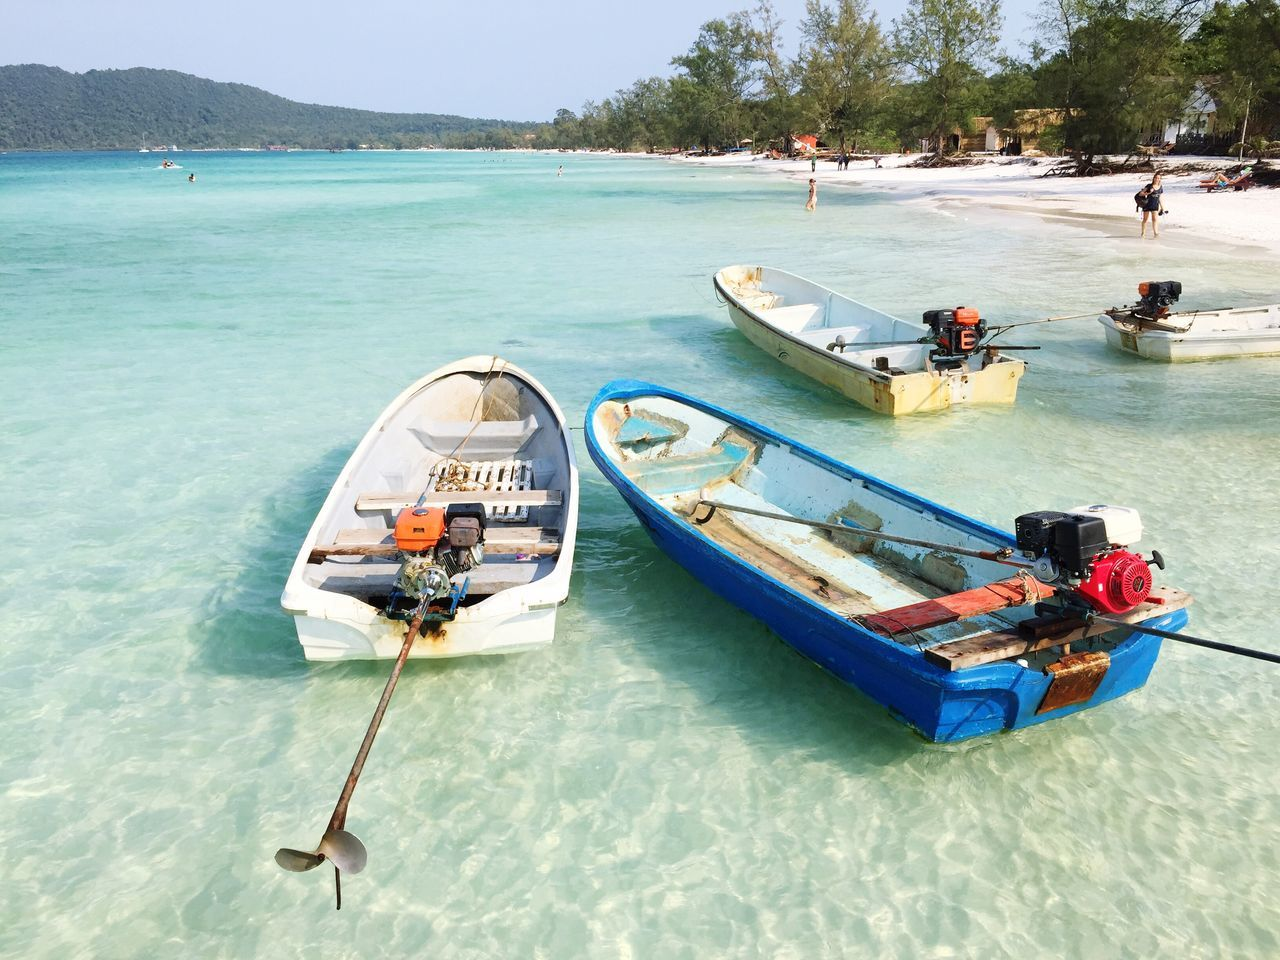 the Photo is taken at Koh Rong Samloem , Cambodia . A Heaven in Earth that I have ever been. The Sea is very clear with white Sand . One of the Beautiful Beach in ASIA . Thebroadlife